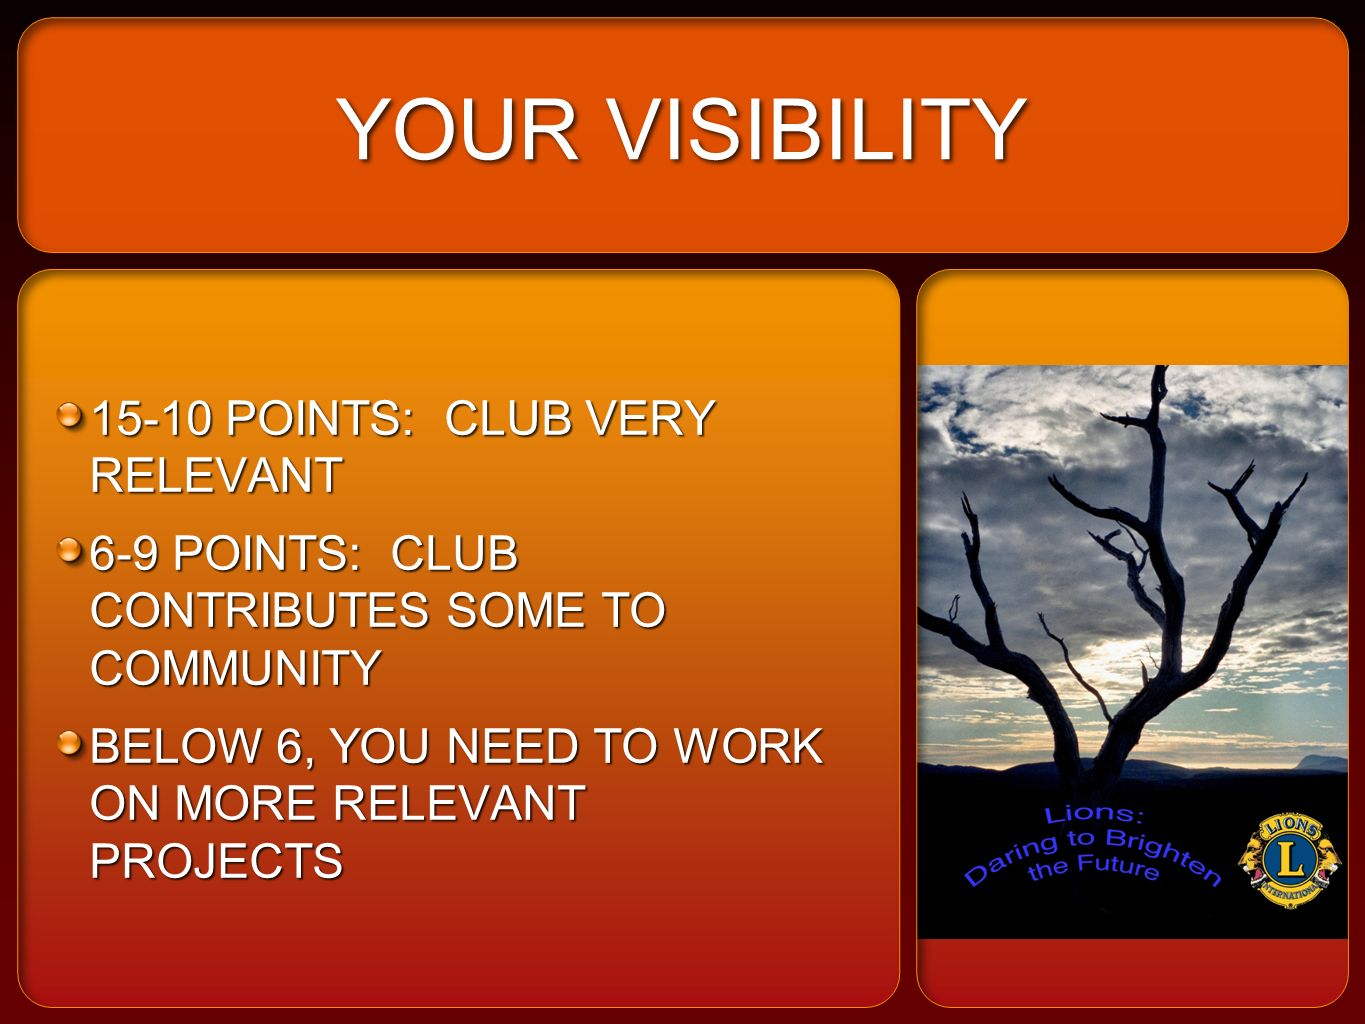 YOUR VISIBILITY 15-10 POINTS: CLUB VERY RELEVANT 6-9 POINTS: CLUB CONTRIBUTES SOME TO COMMUNITY BELOW 6, YOU NEED TO WORK ON MORE RELEVANT PROJECTS 15-10 POINTS: CLUB VERY RELEVANT 6-9 POINTS: CLUB CONTRIBUTES SOME TO COMMUNITY BELOW 6, YOU NEED TO WORK ON MORE RELEVANT PROJECTS